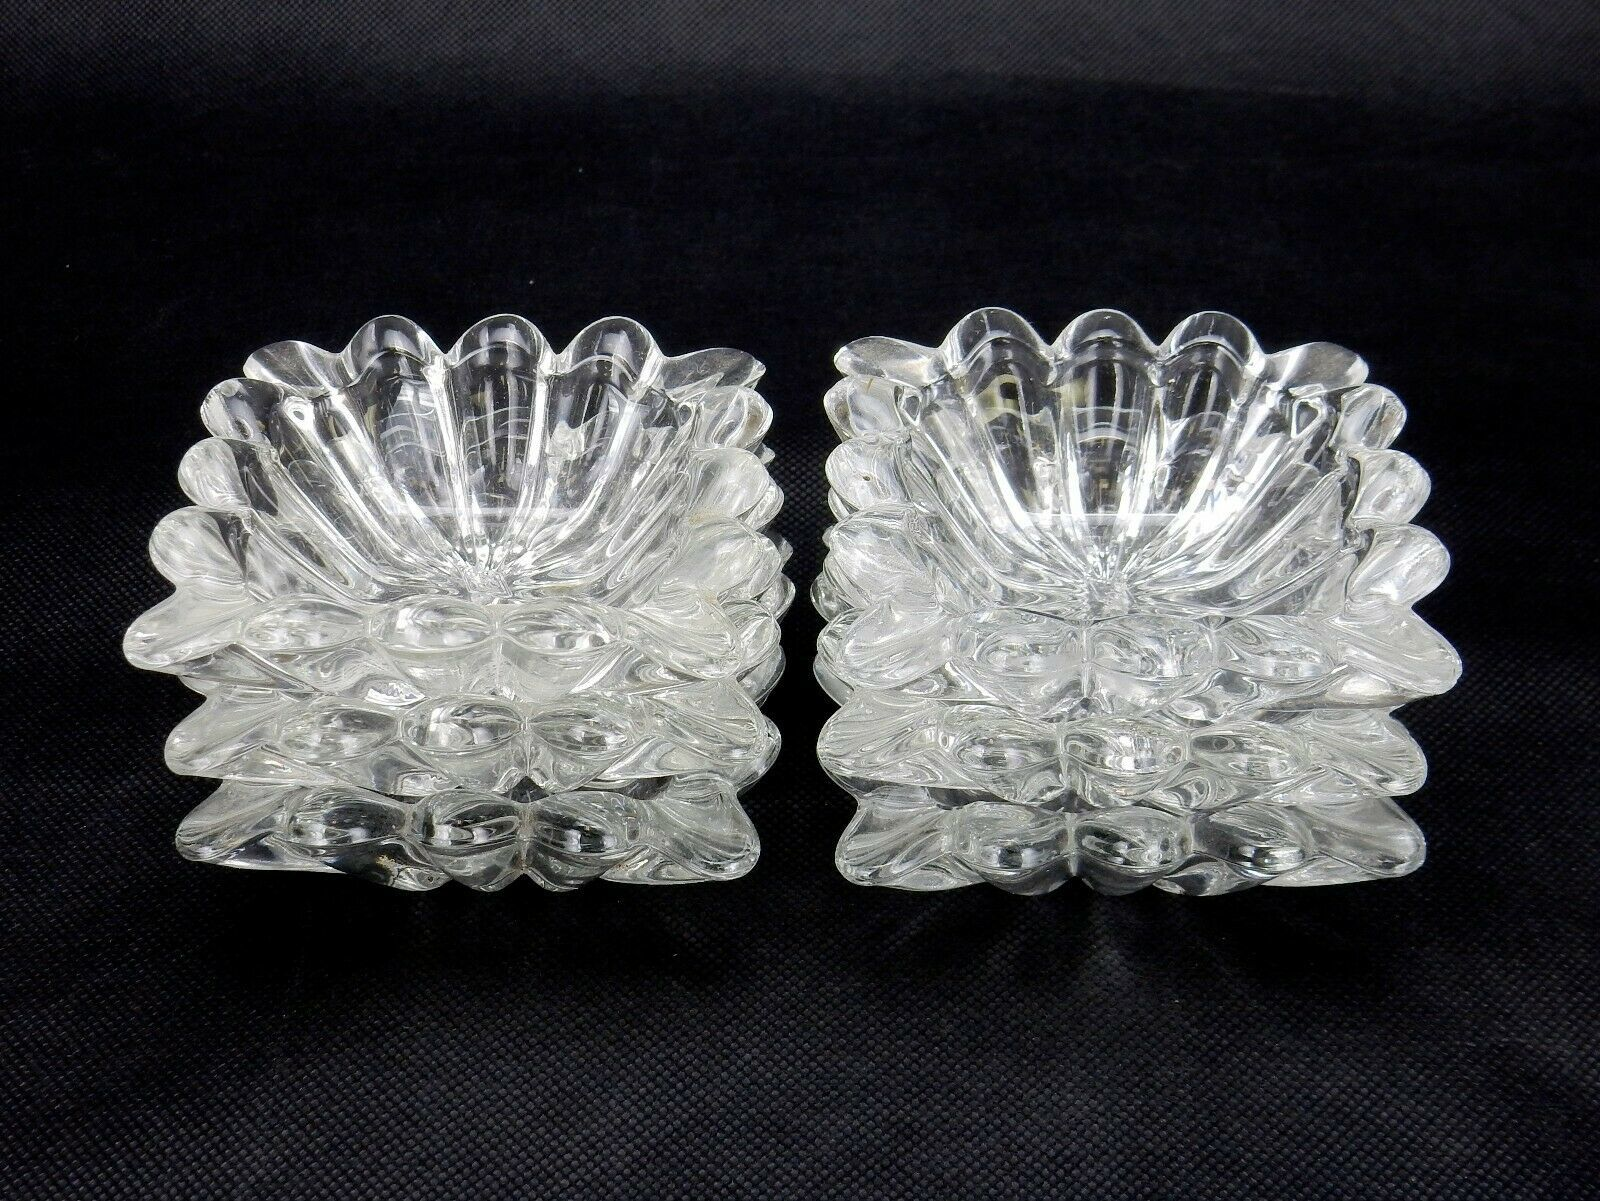 Primary image for Vintage Heisey Ridgeleigh Salts Set of 6 Nut Dish or Open Salt Heisey Set of 6